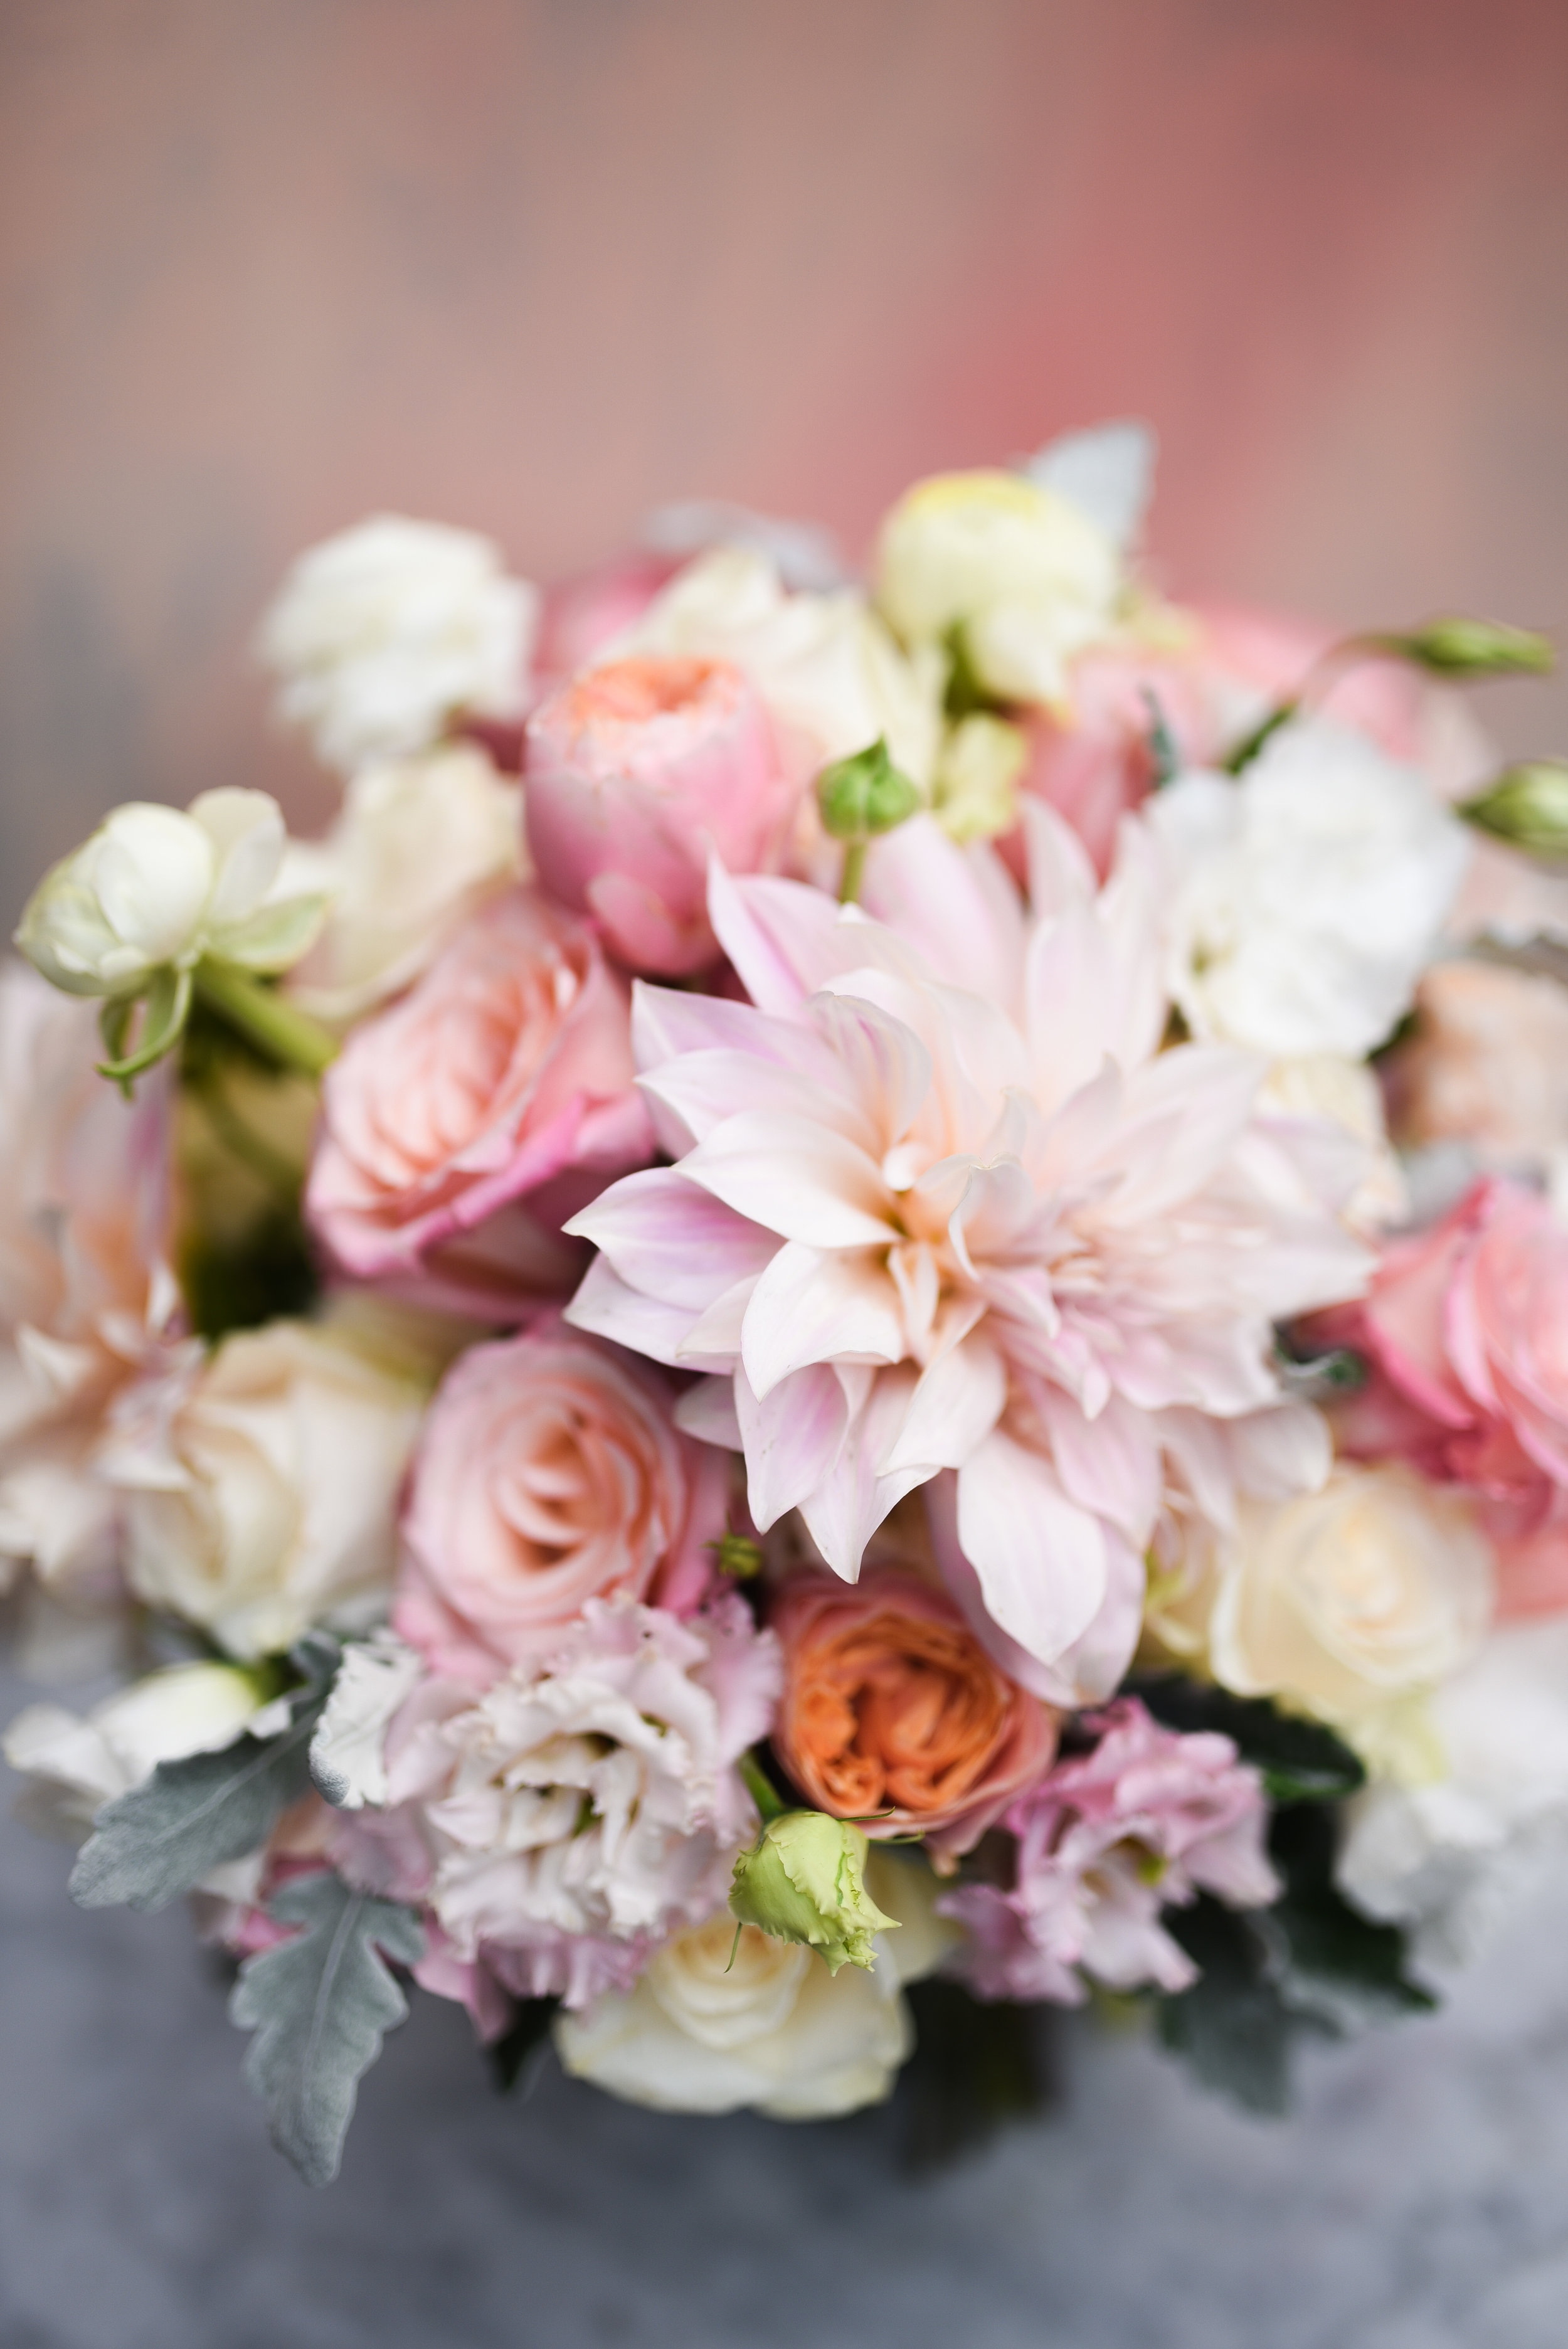 A stunning bridal bouquet of pale and blush pinks